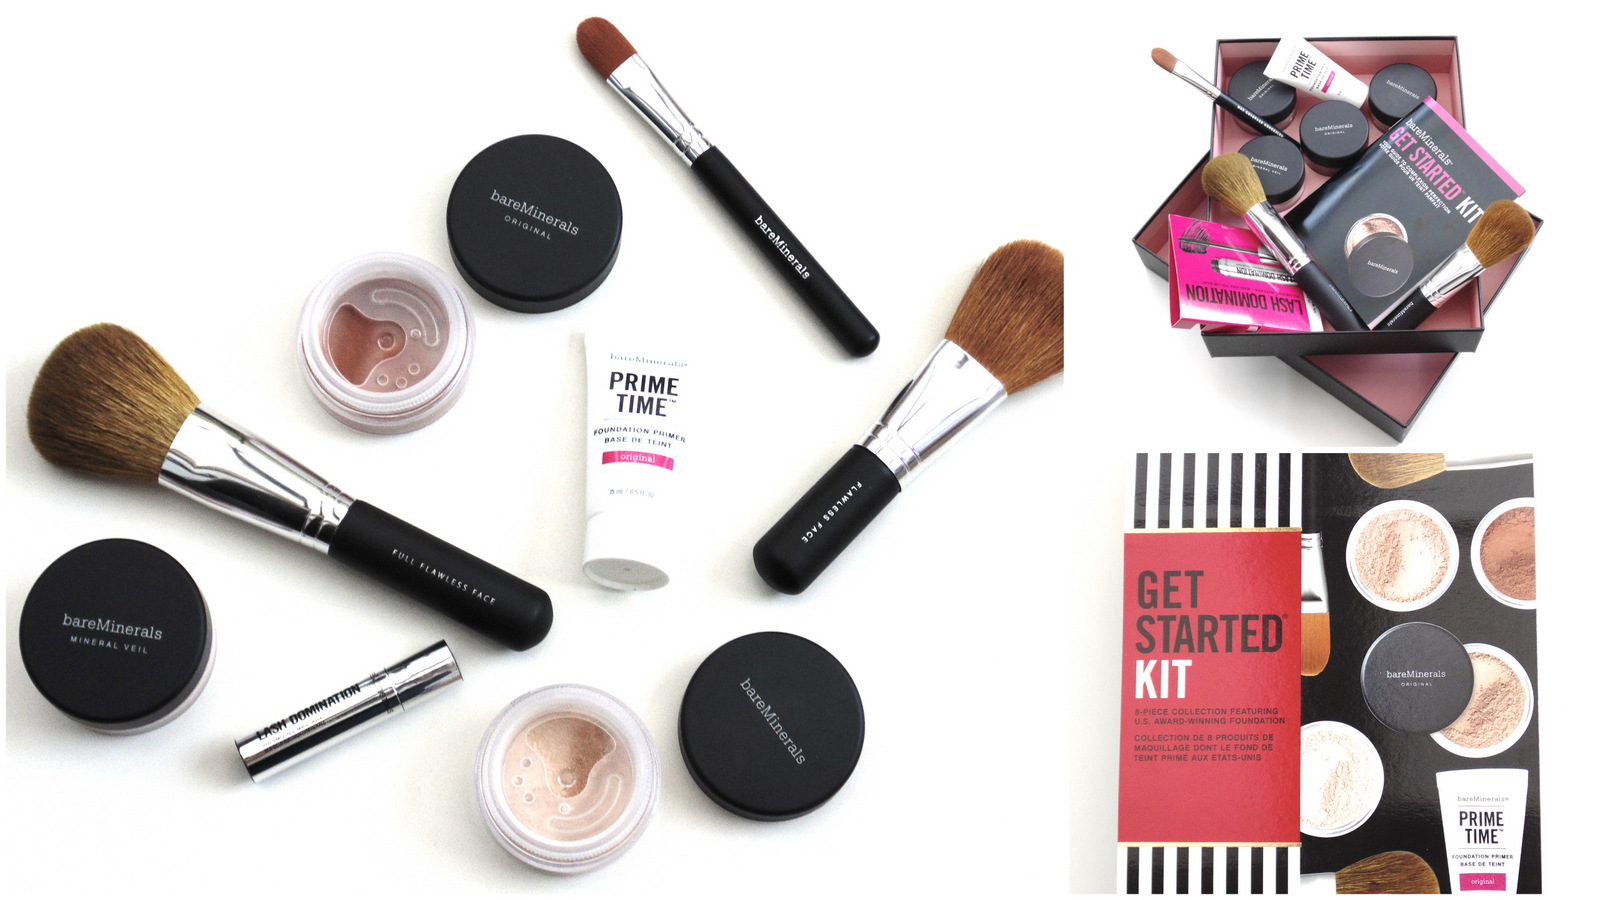 Review: Bare Minerals Get Started Kit